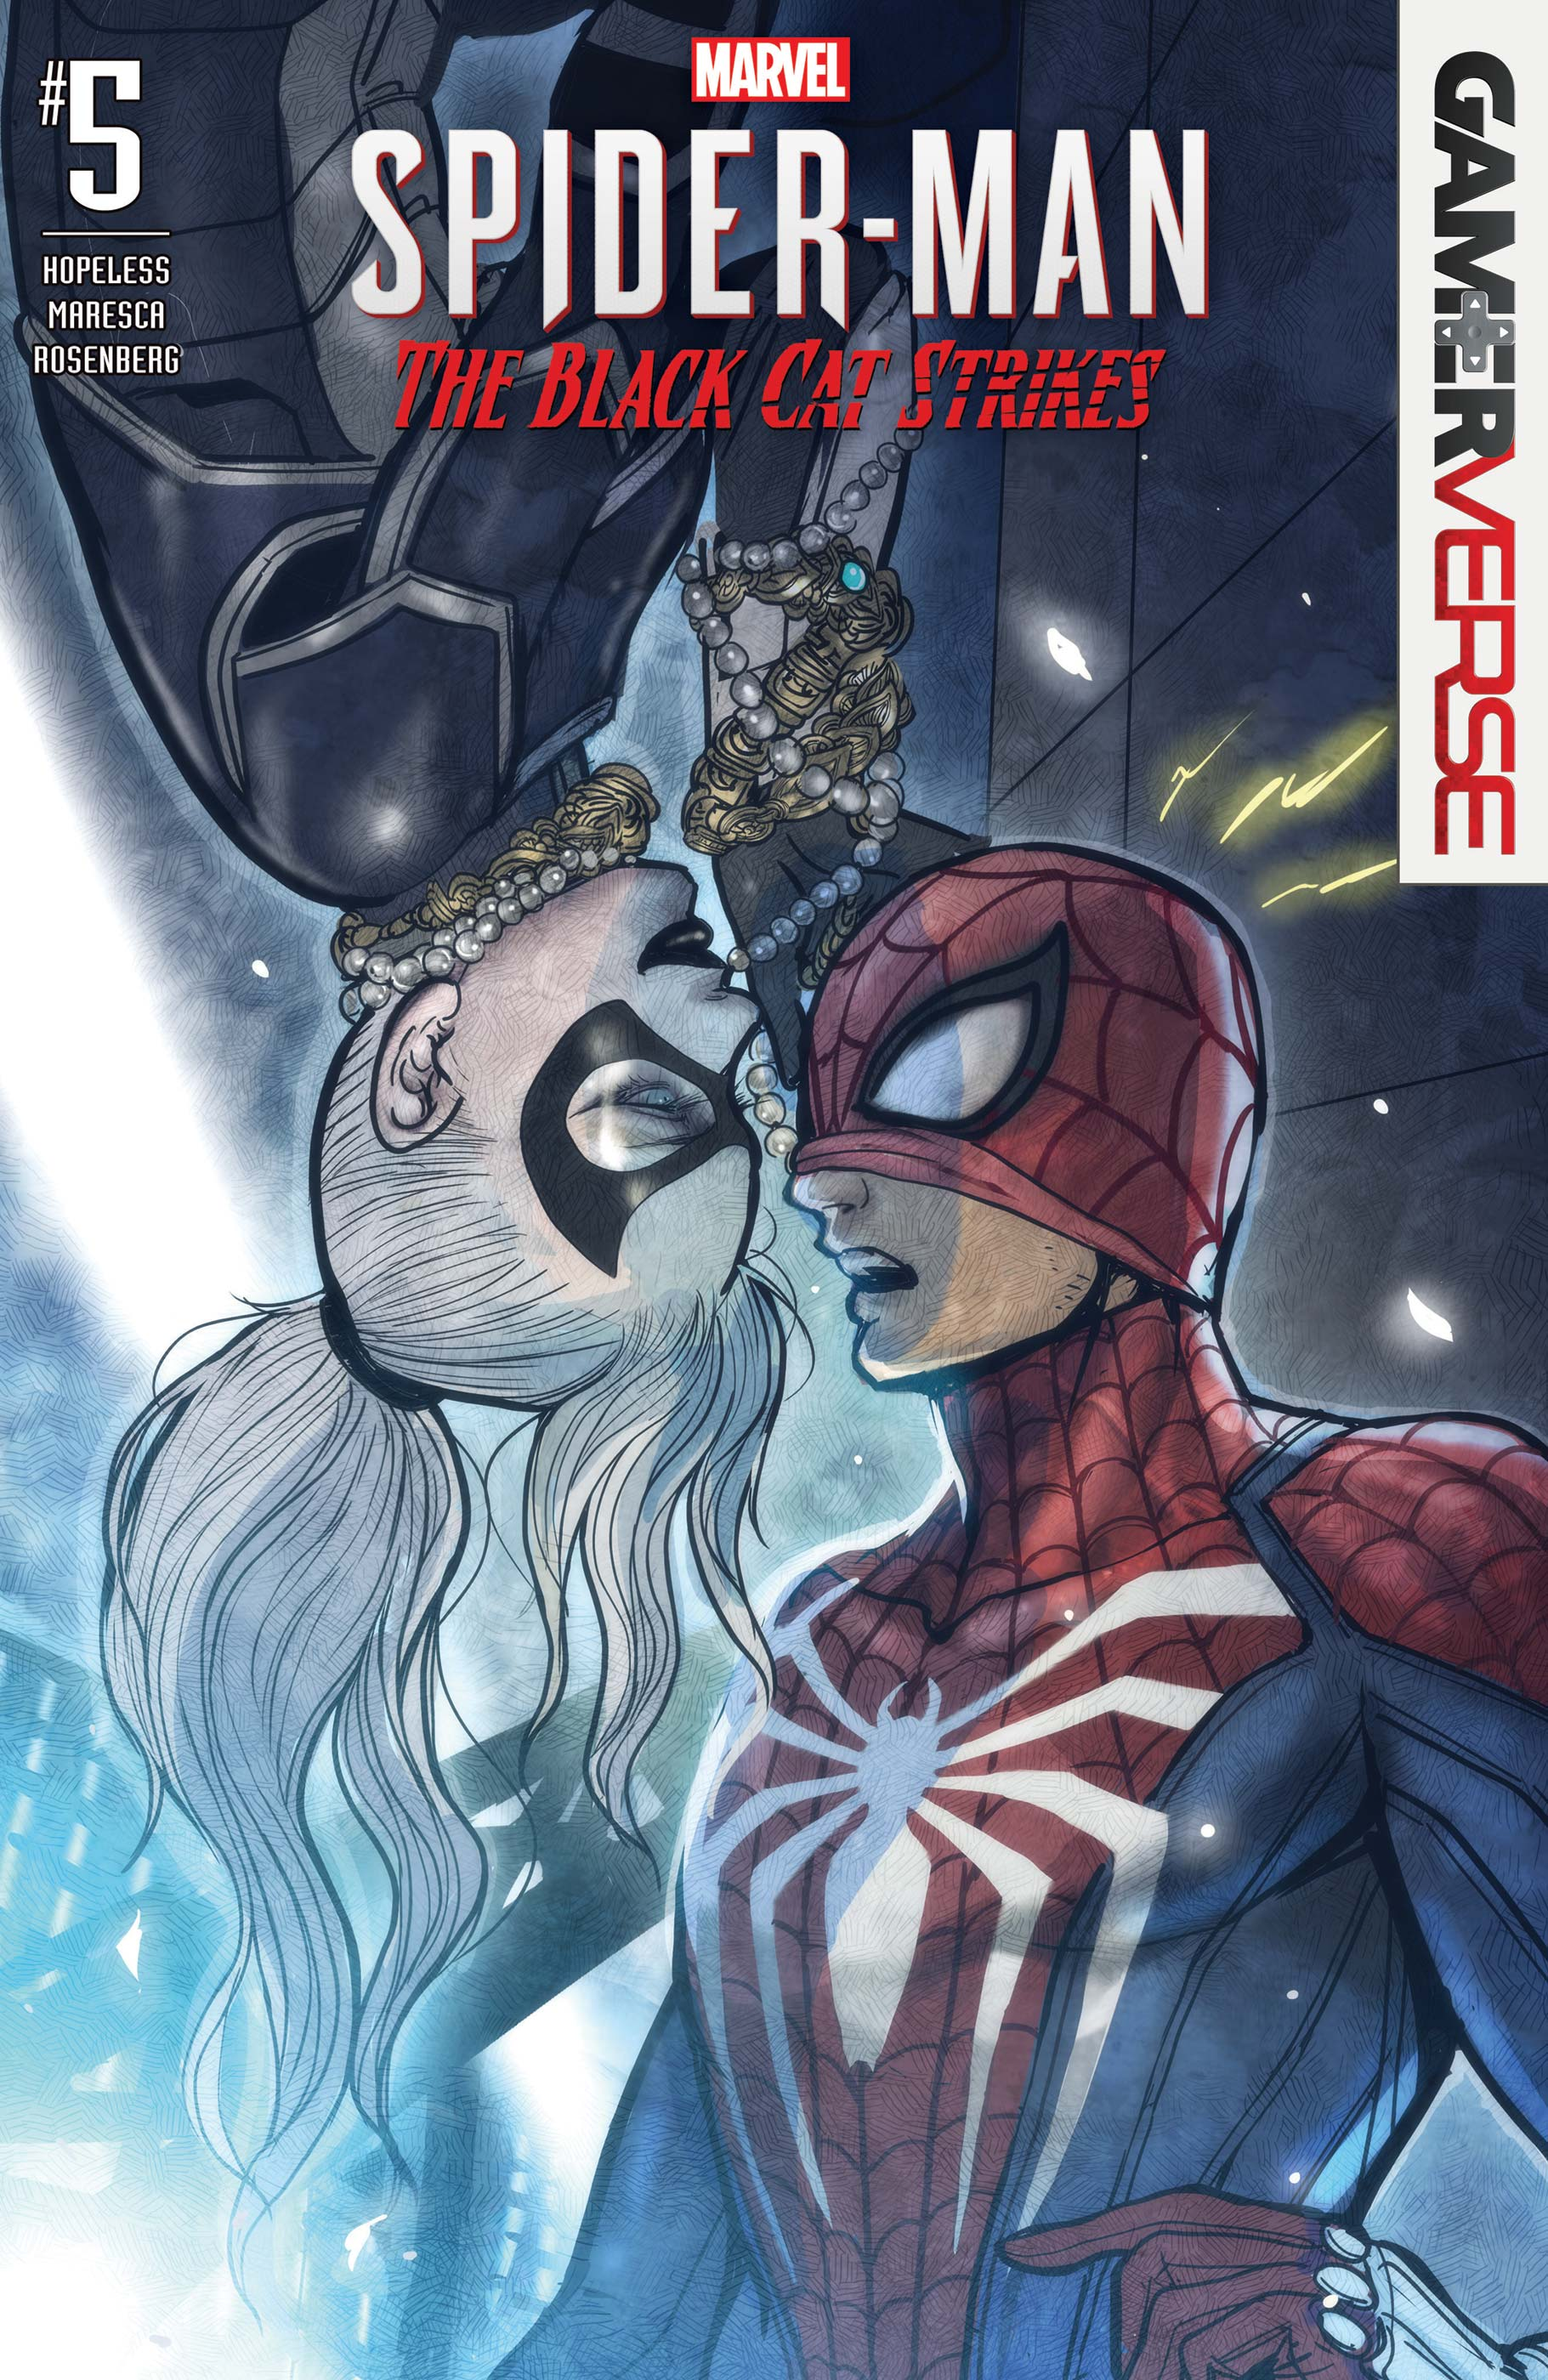 Marvel's Spider-Man: The Black Cat Strikes (2020) #5